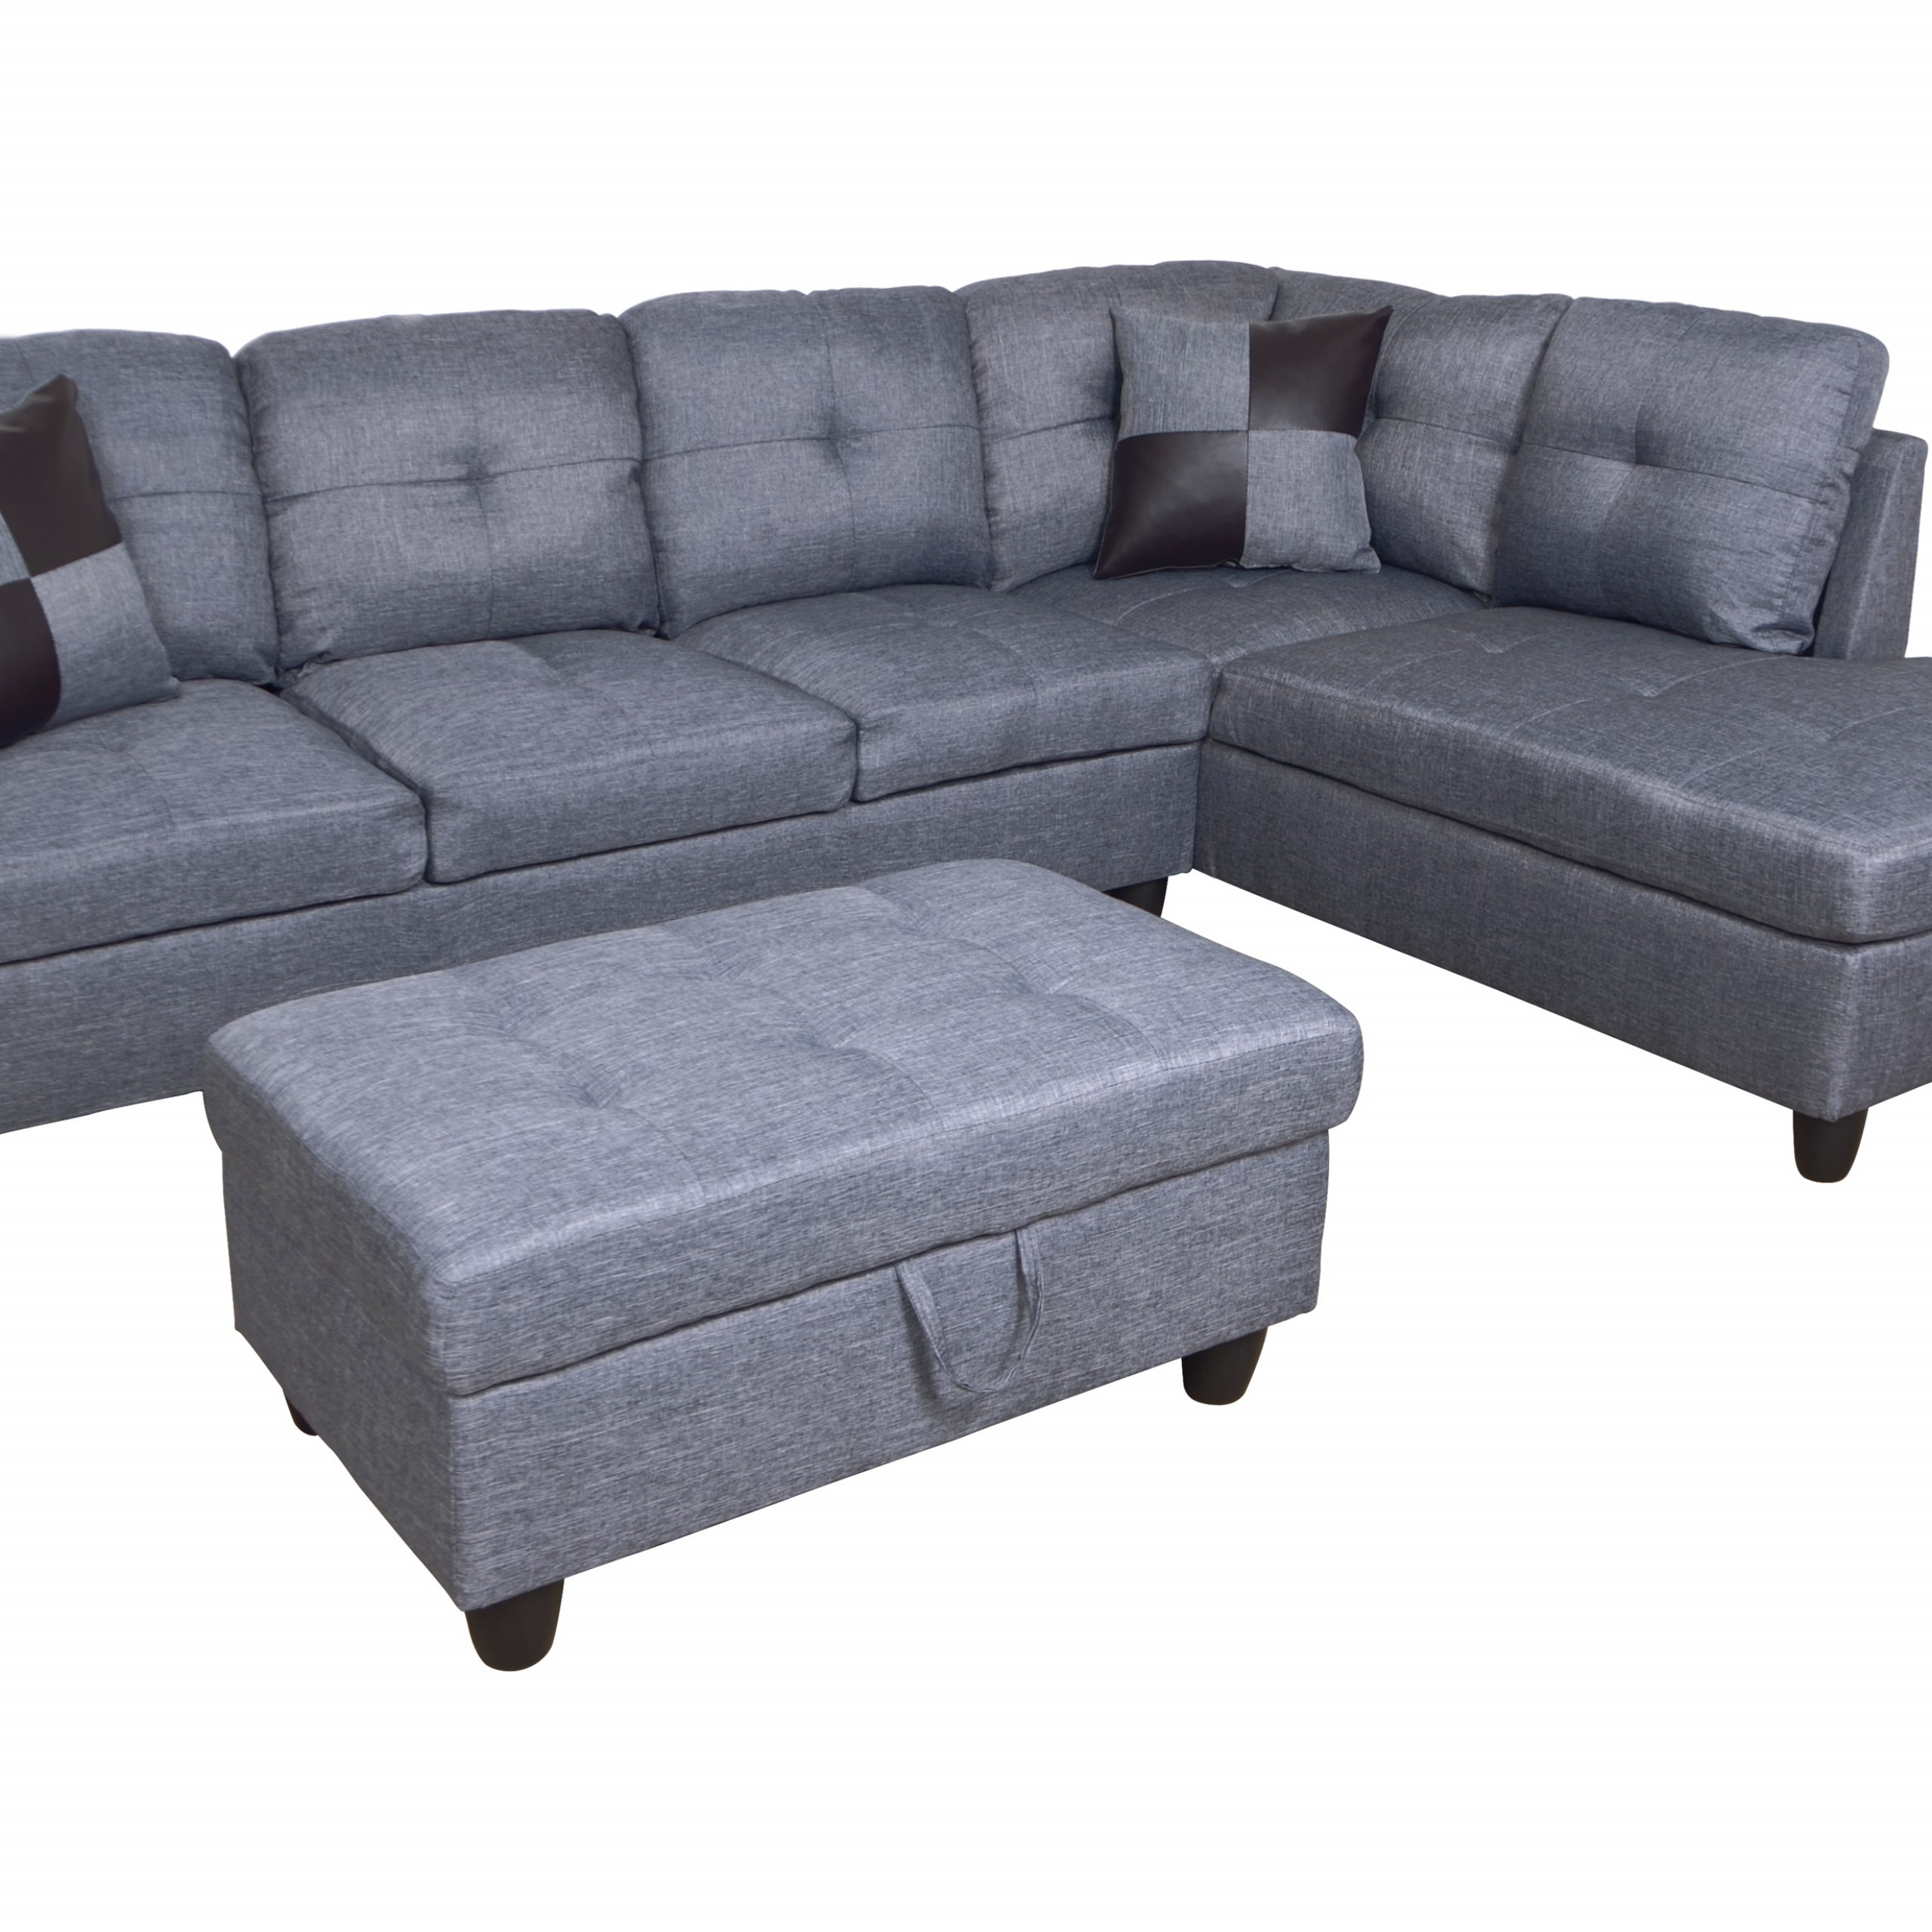 Famous Hermann Left Chaise Sectional Sofa With Storage Ottoman For Celine Sectional Futon Sofas With Storage Reclining Couch (View 7 of 25)